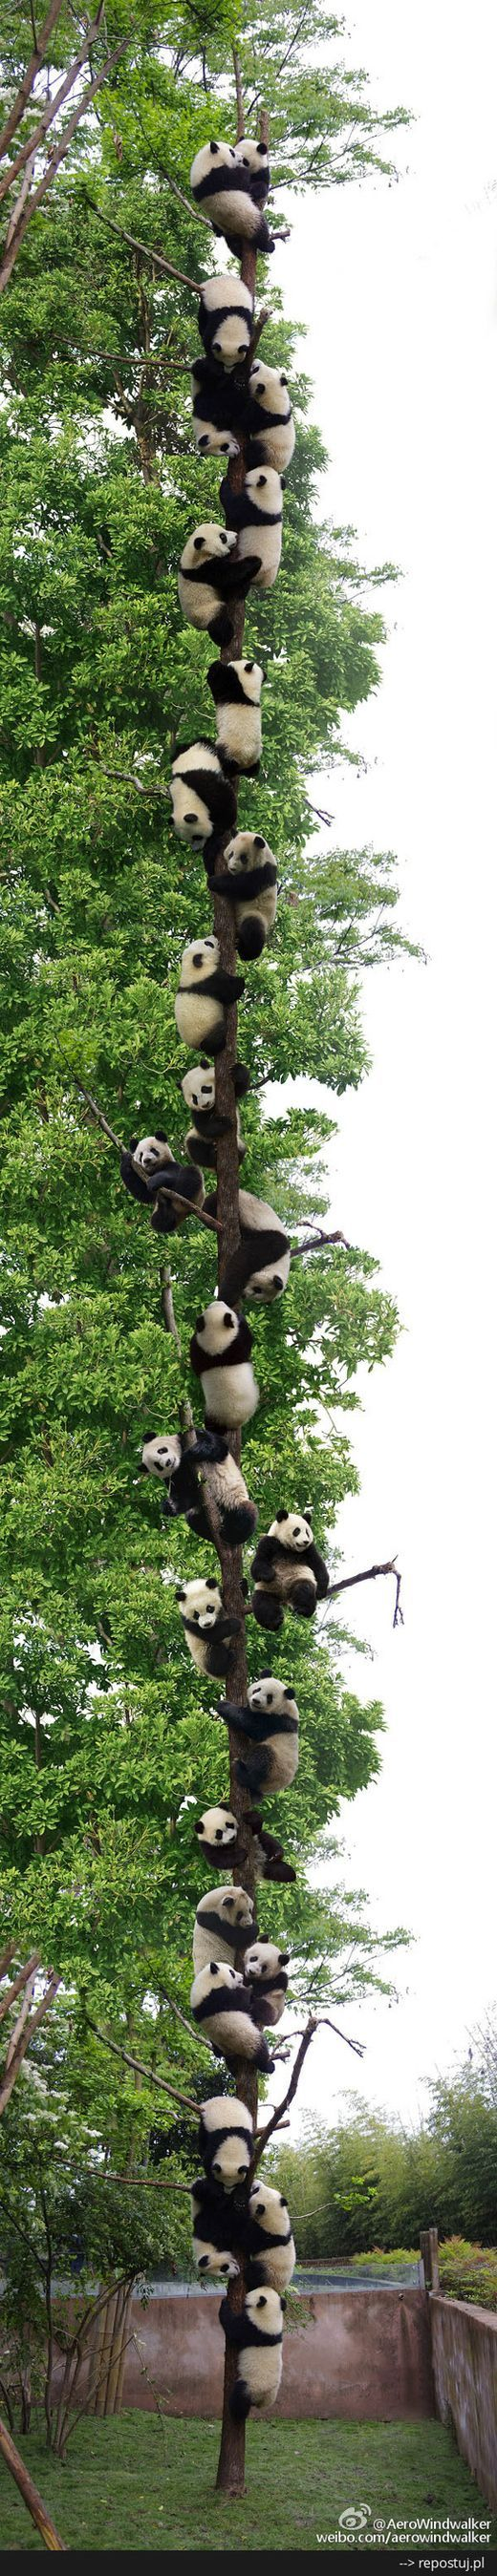 Do you want to know more about the cutest animals in the world? Then you'll like our 10 incredible facts about these adorable creatures. Too many pandas are never enough! #Panda #AdorablePanda